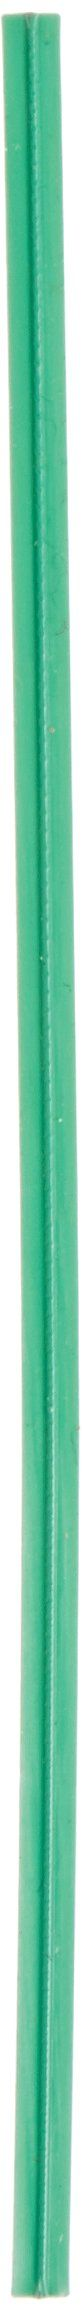 """Aviditi PLT6G Plastic Twist Tie, 6"""" Length x 5/32"""" Width, Green (Case of 2000). Sealing poly bags with plastic twist ties makes bags reusable. Ties are made from long-life easy bending wire coil. Plastic Twist Ties are moisture resistant and can be used outdoors. Available in green color. Measures 6-inches length by 5/32-inches width."""